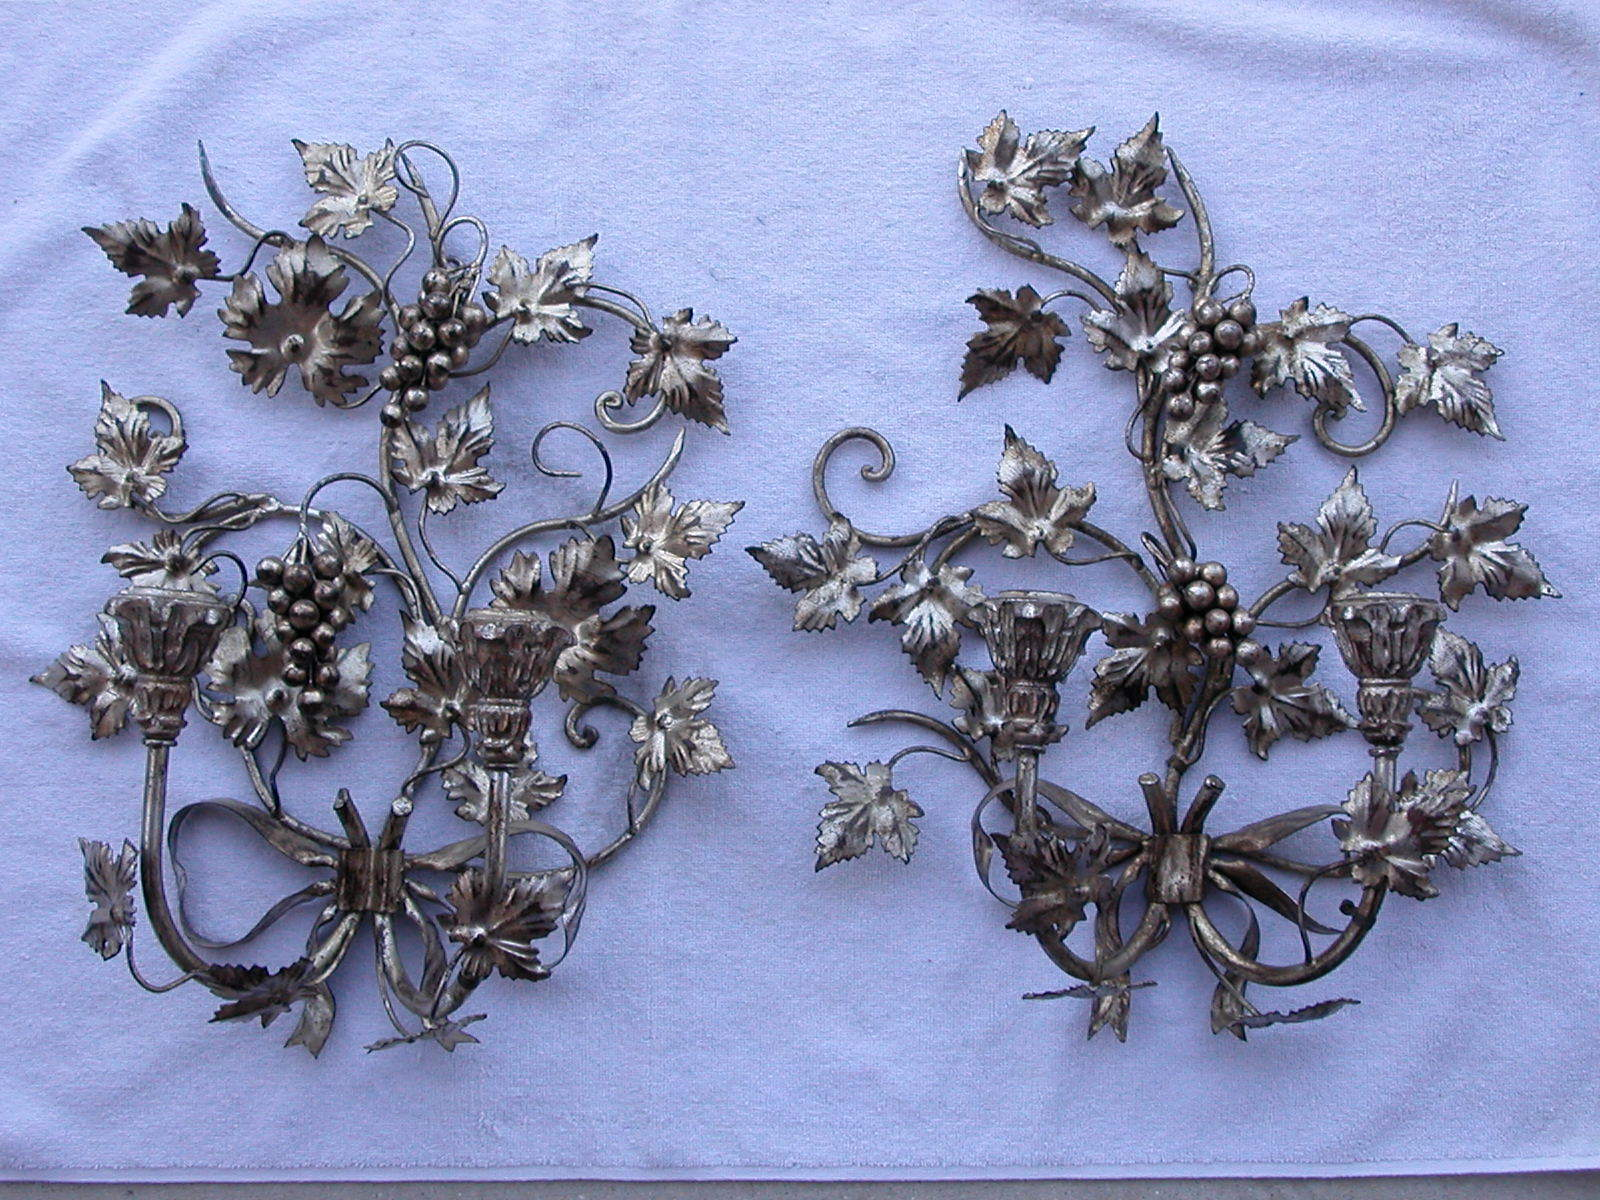 VTG Pair Toleware Italy Silver Grape & Leaf Candle Sconces 18X16 Tole Metal Wood